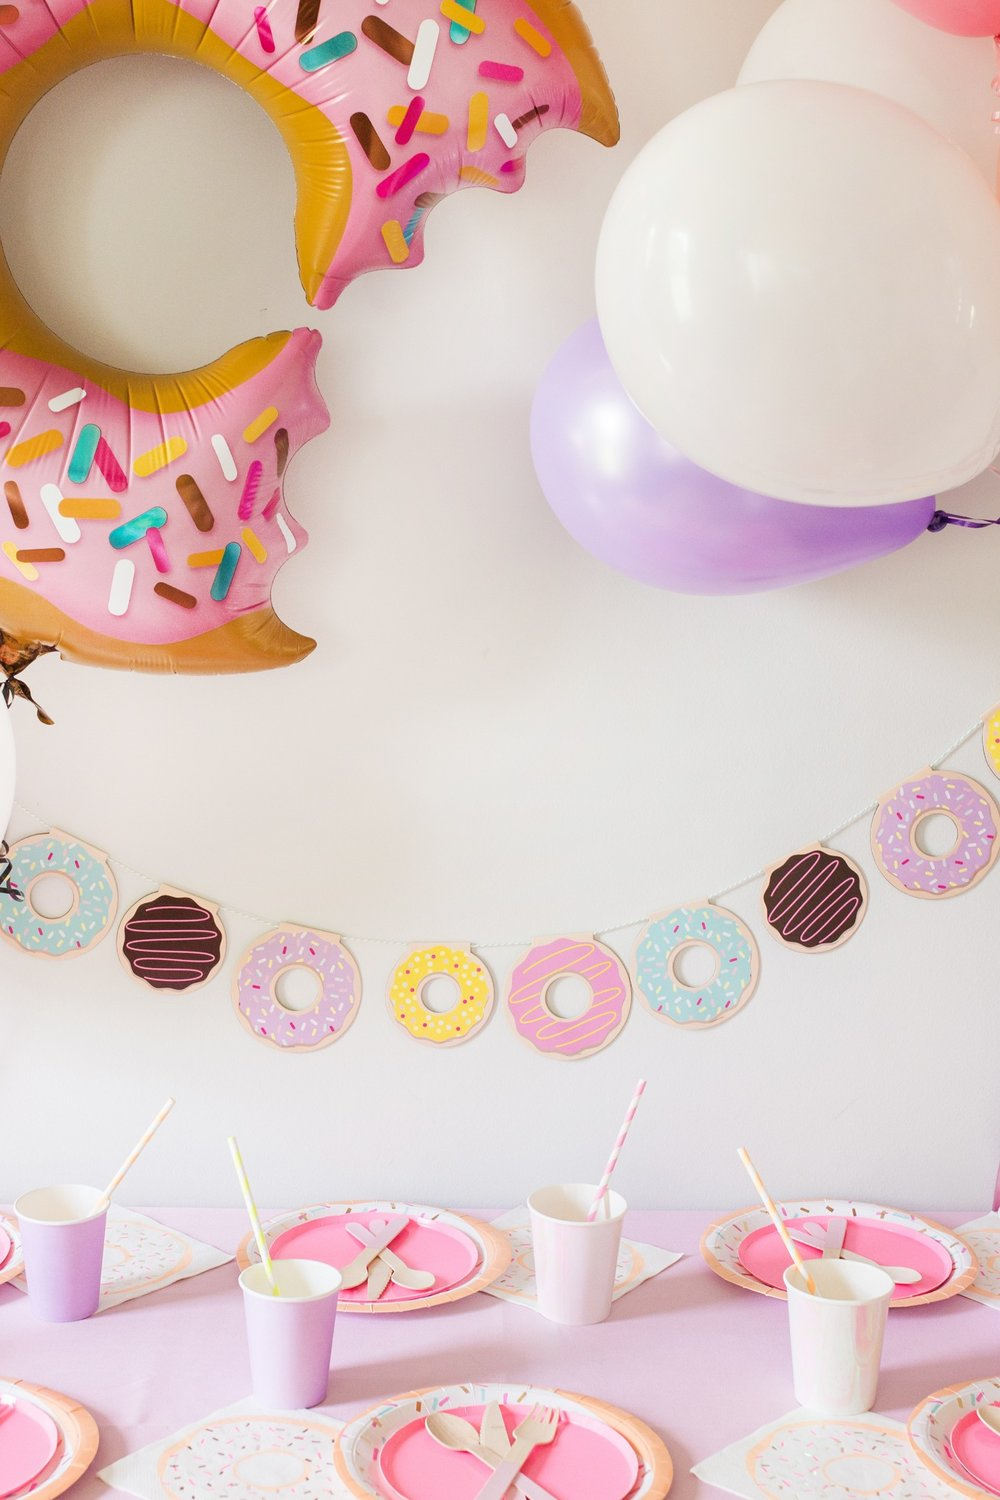 Go Nuts for Donut Party Kit